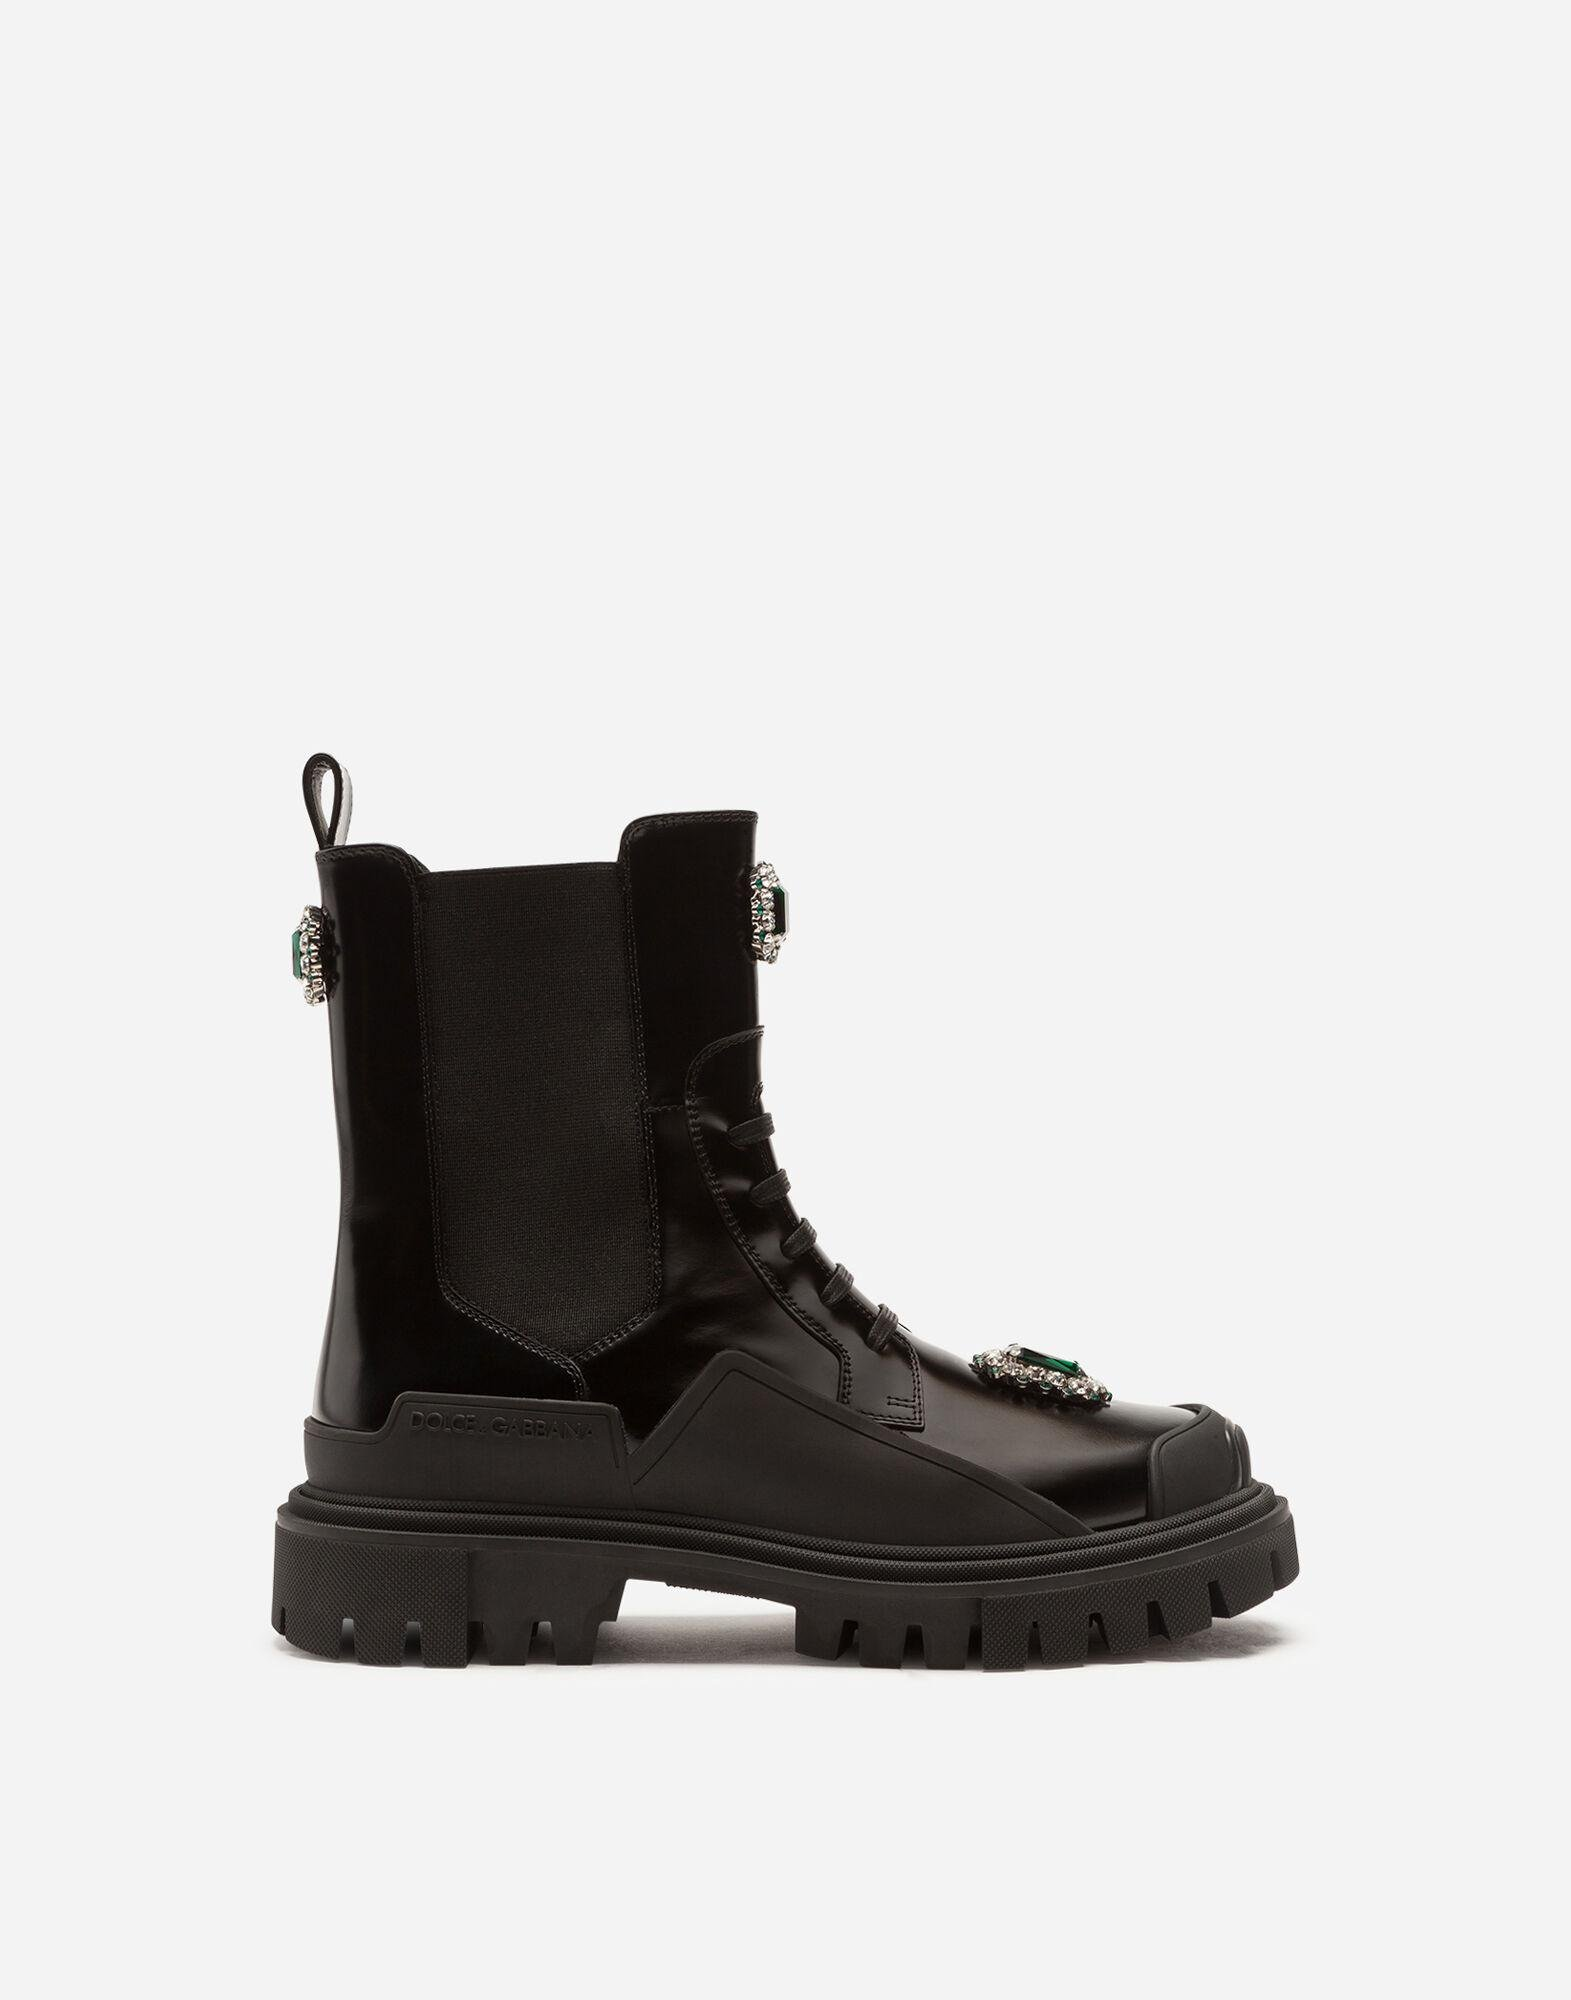 Polished calfskin combat boots with bejeweled embroidery